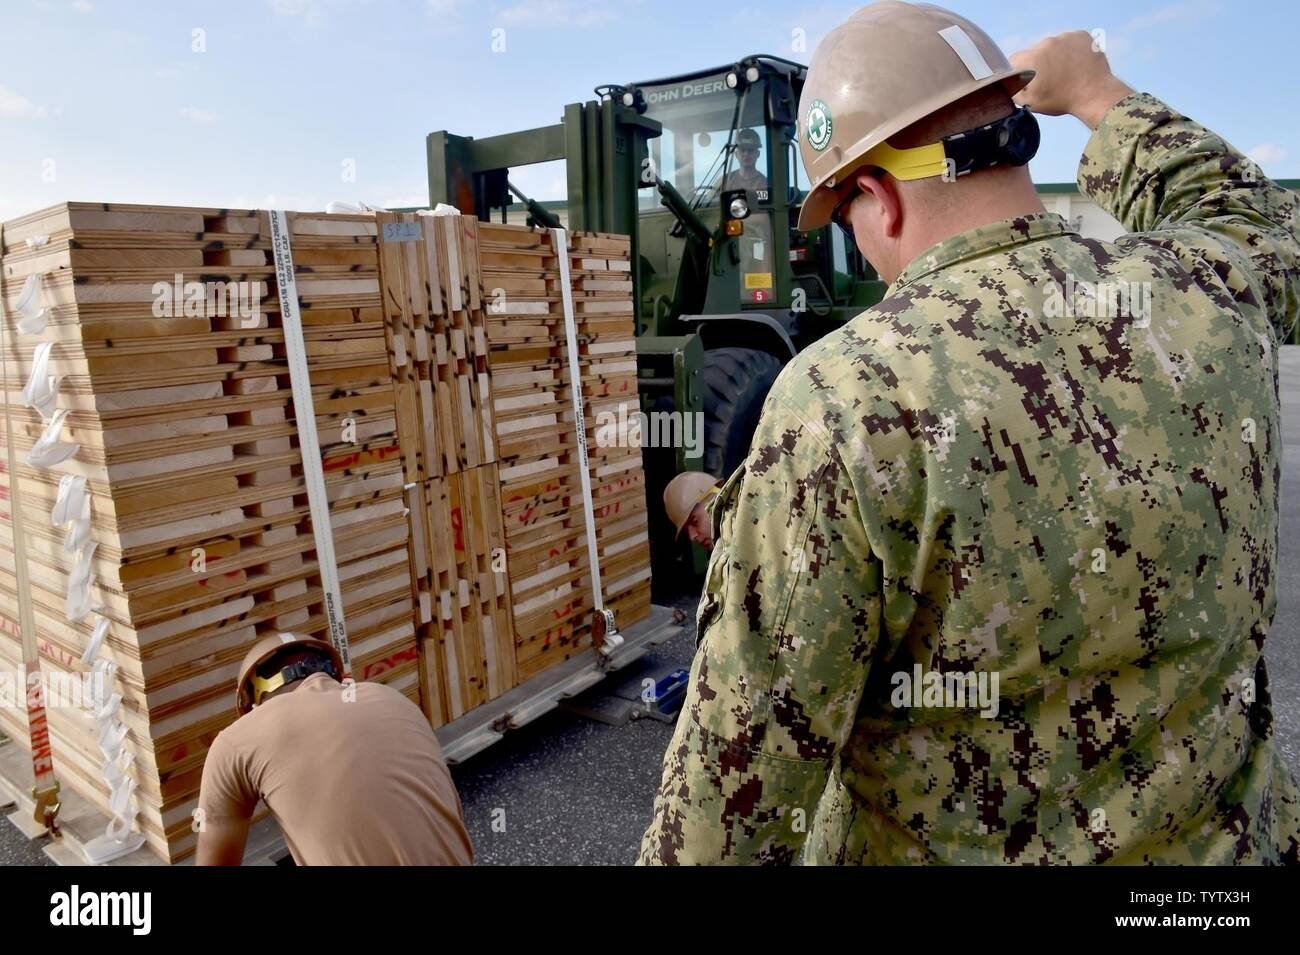 Japan (Nov 29, 2016) Petty Officer 2nd Class Bernard Barbuto, a Seabee assigned to Naval Mobile Construction Battalion (NMCB) 5, gives directions to a forklift operator while weighing a pallet on Camp Shields during an embark exercise. The exercise tests the commands ability to mobilize within 48 hours to react to different types of types of contingency operations around the world. NMCB 5 is the forward deployed Western Pacific NMCB ready to support Major Combat Operations, Humanitarian Assistance and Disaster Relief operations, and to provide general engineering and civil support to Navy, Mar Stock Photo